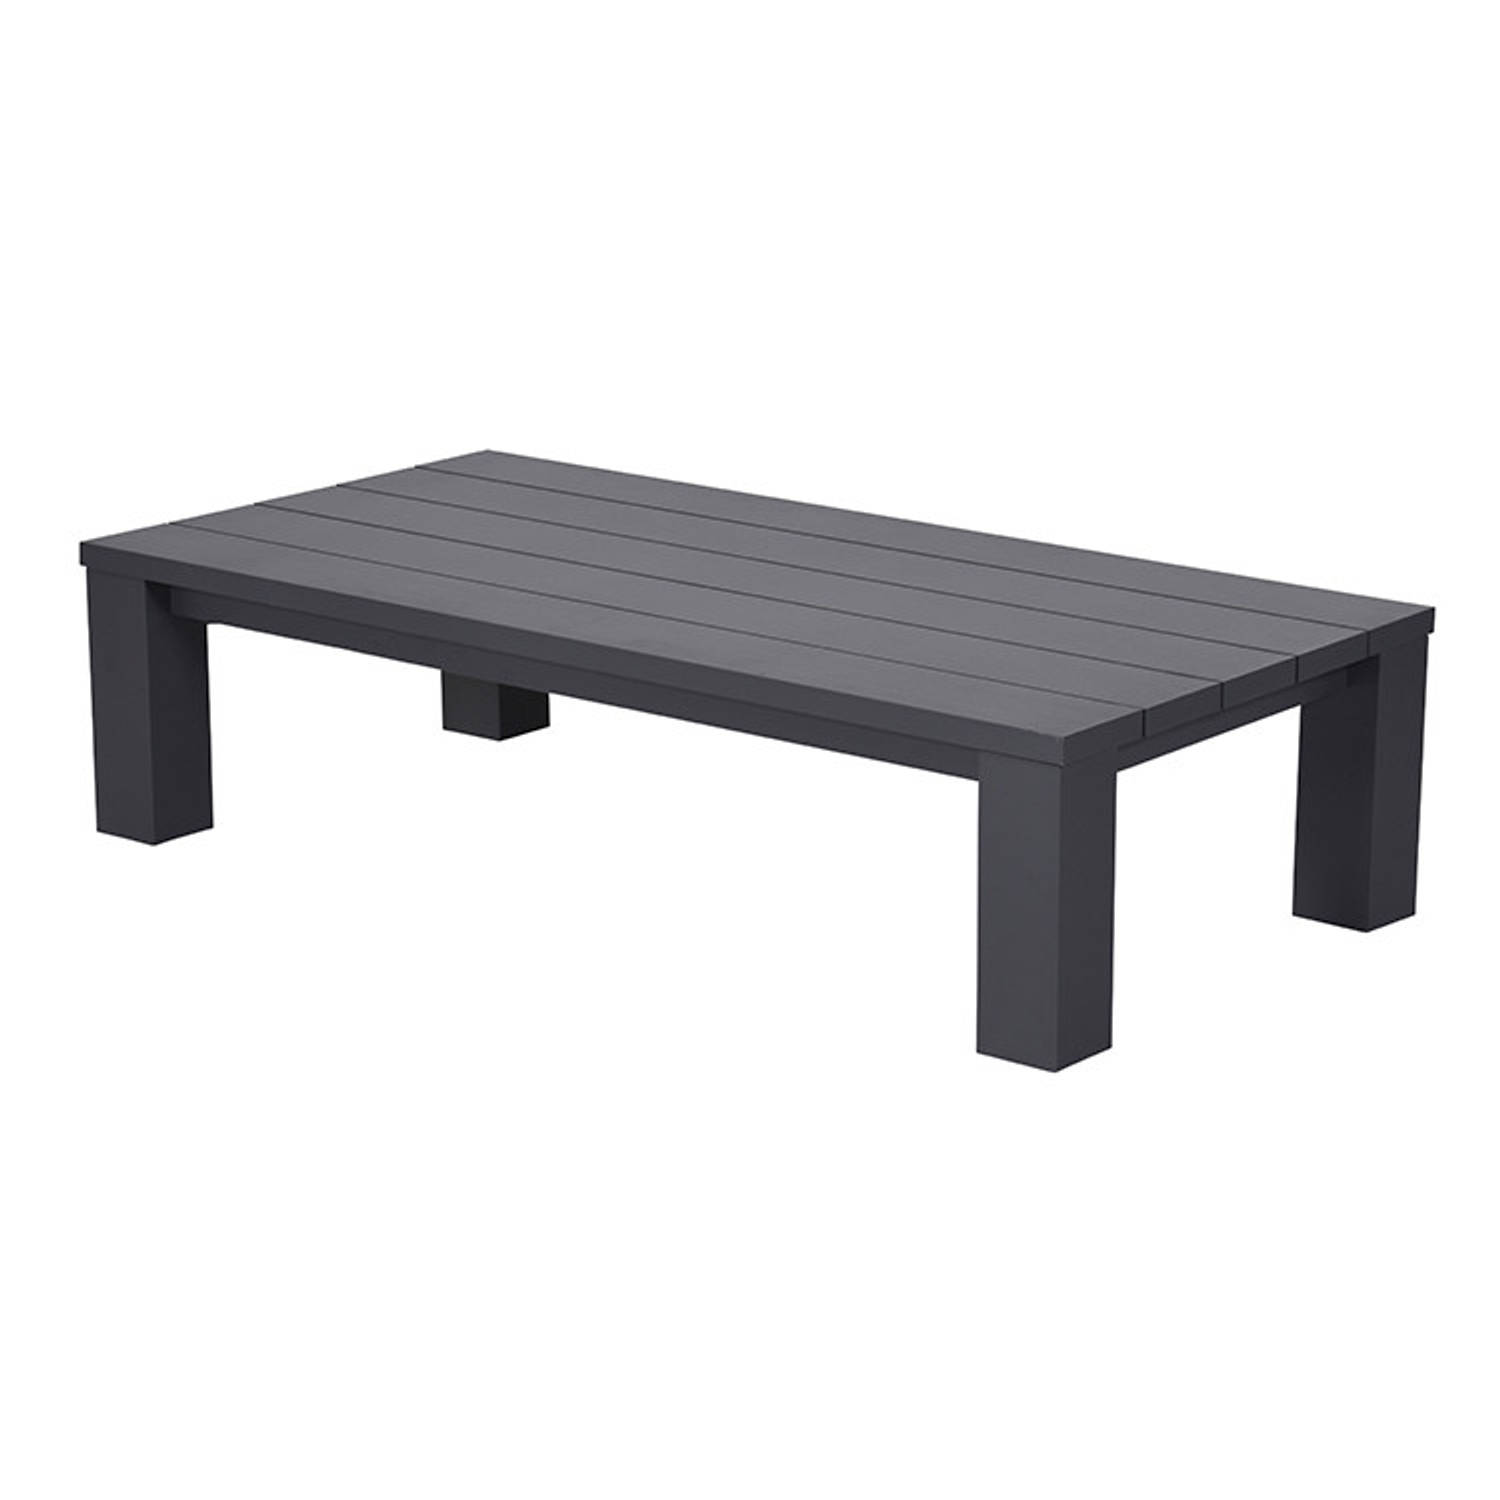 Garden Impressions Plaza lounge tafel 140x70xH40 cm donker grijs